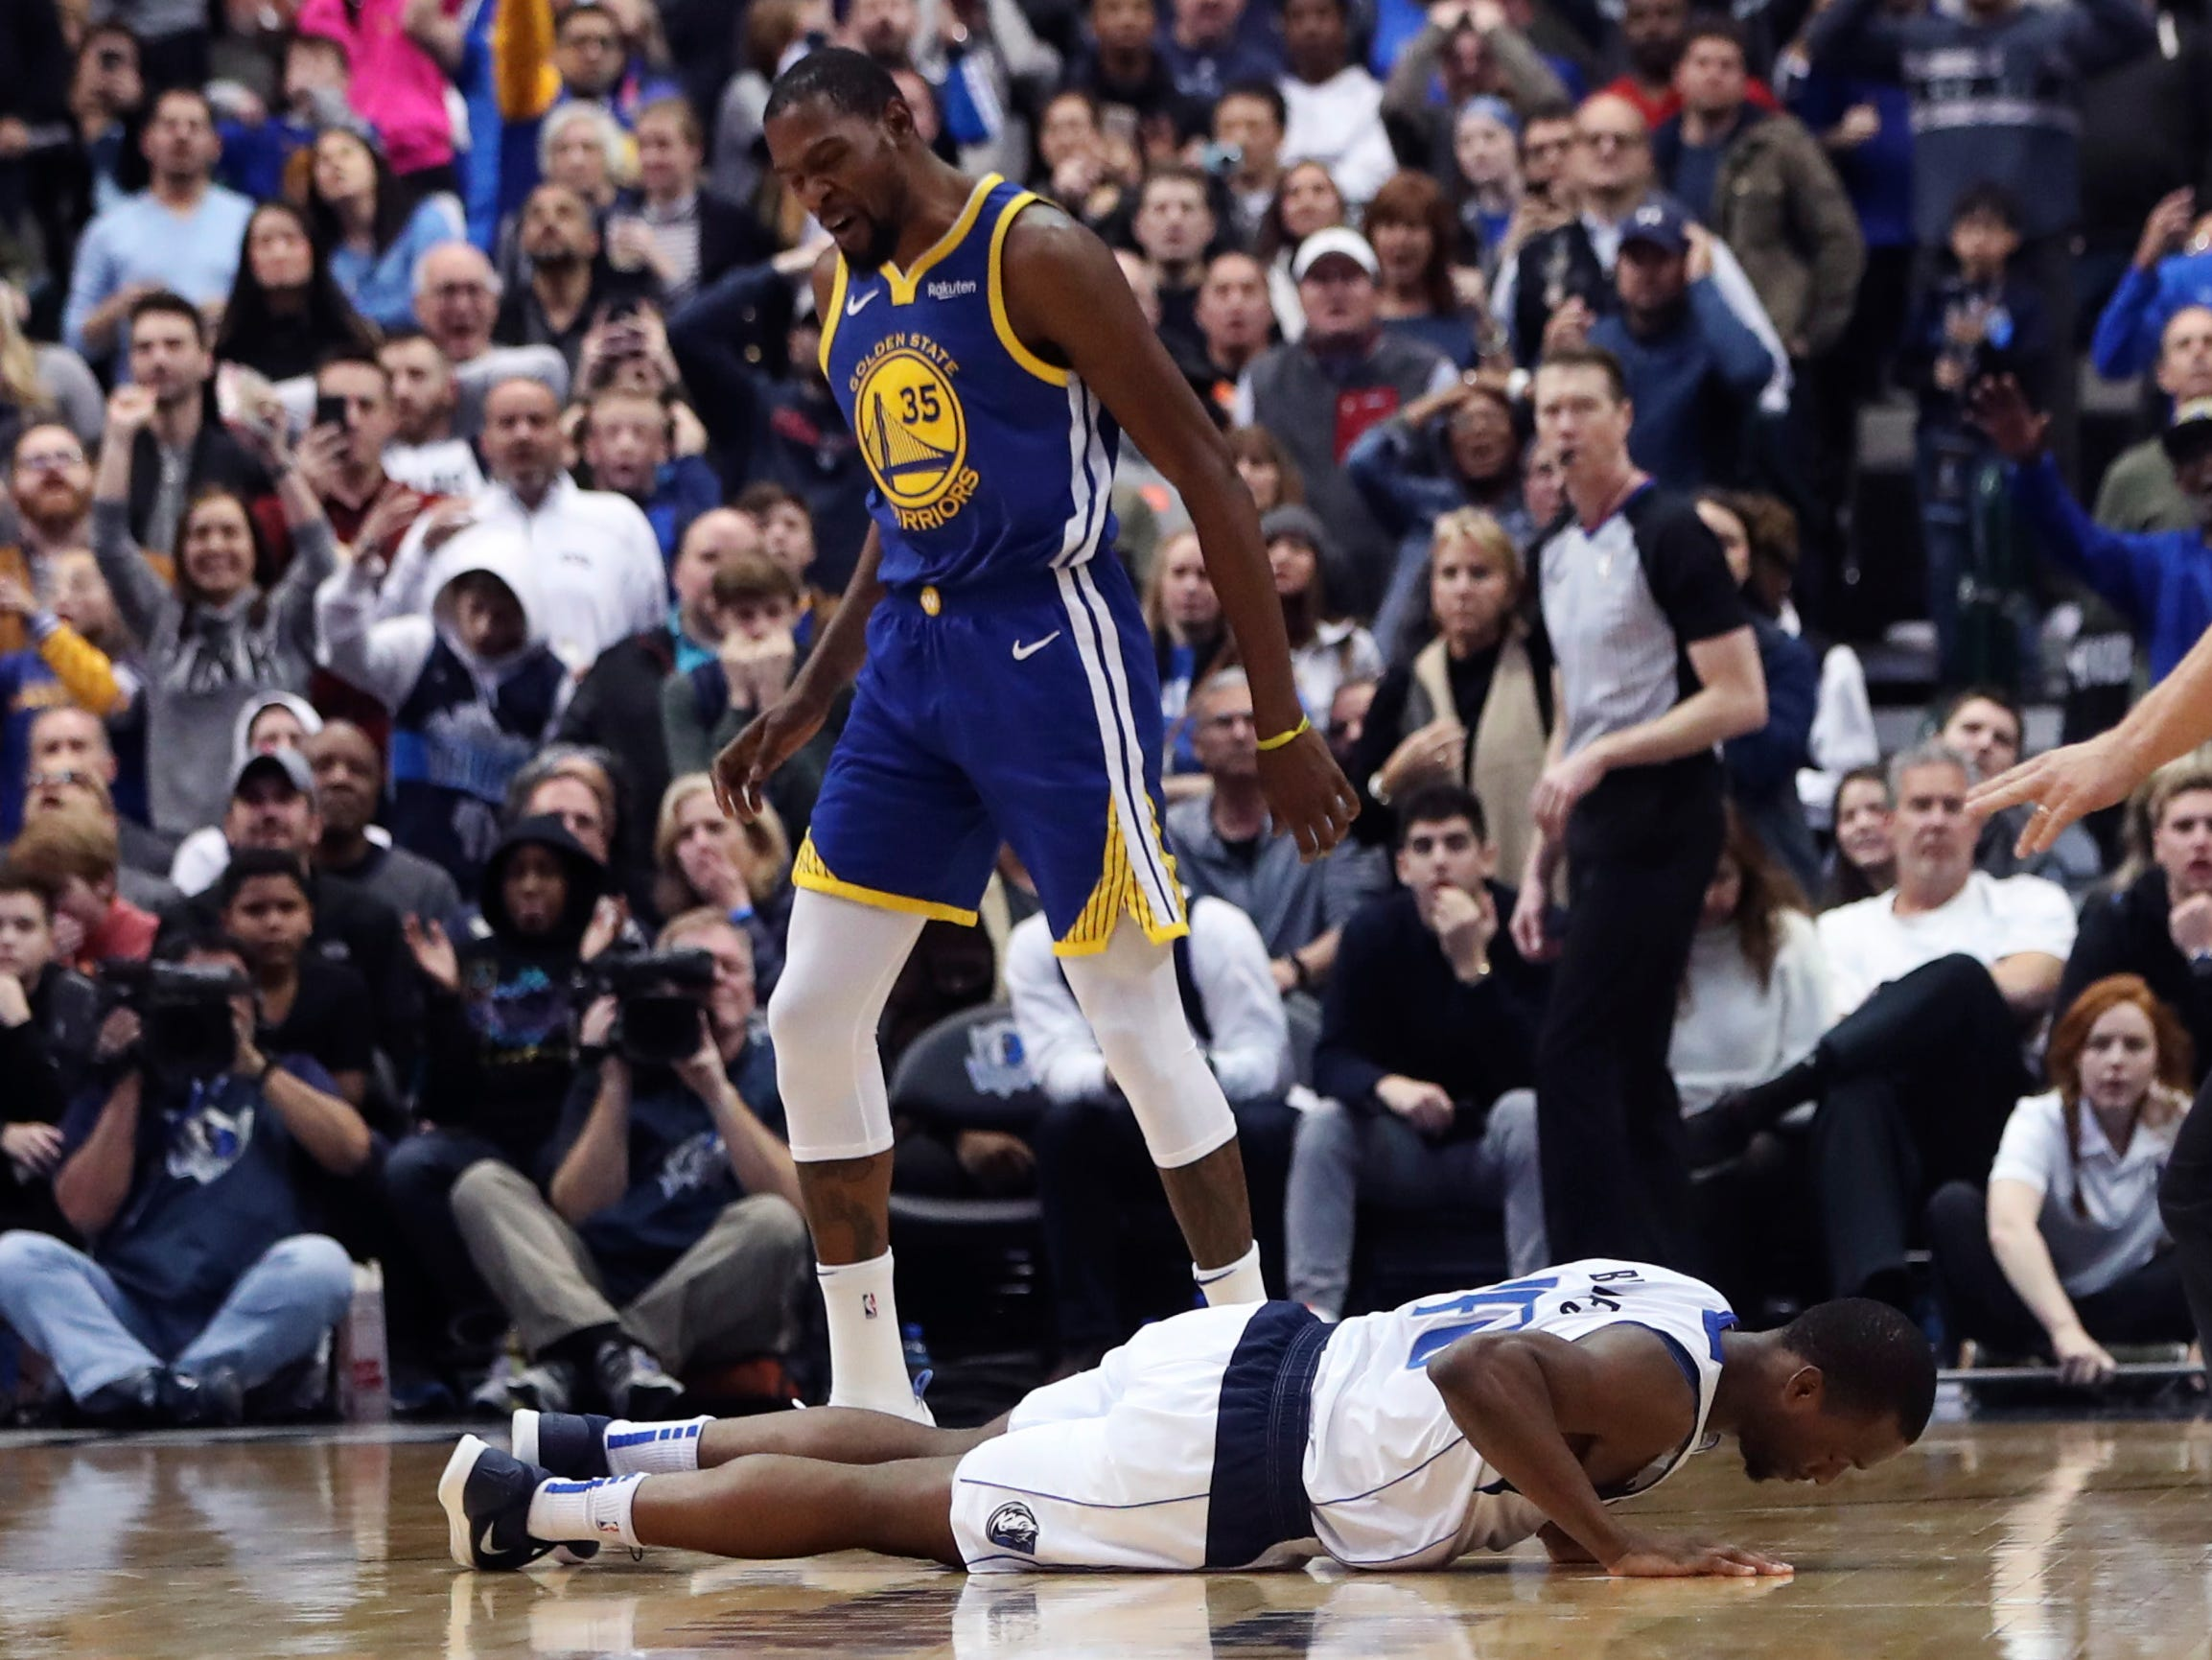 Jan. 13: Mavericks forward Harrison Barnes (40) laments his costly turnover in the closing seconds that allowed Kevin Durant (35) and the Warriors to escape Dallas with a win.